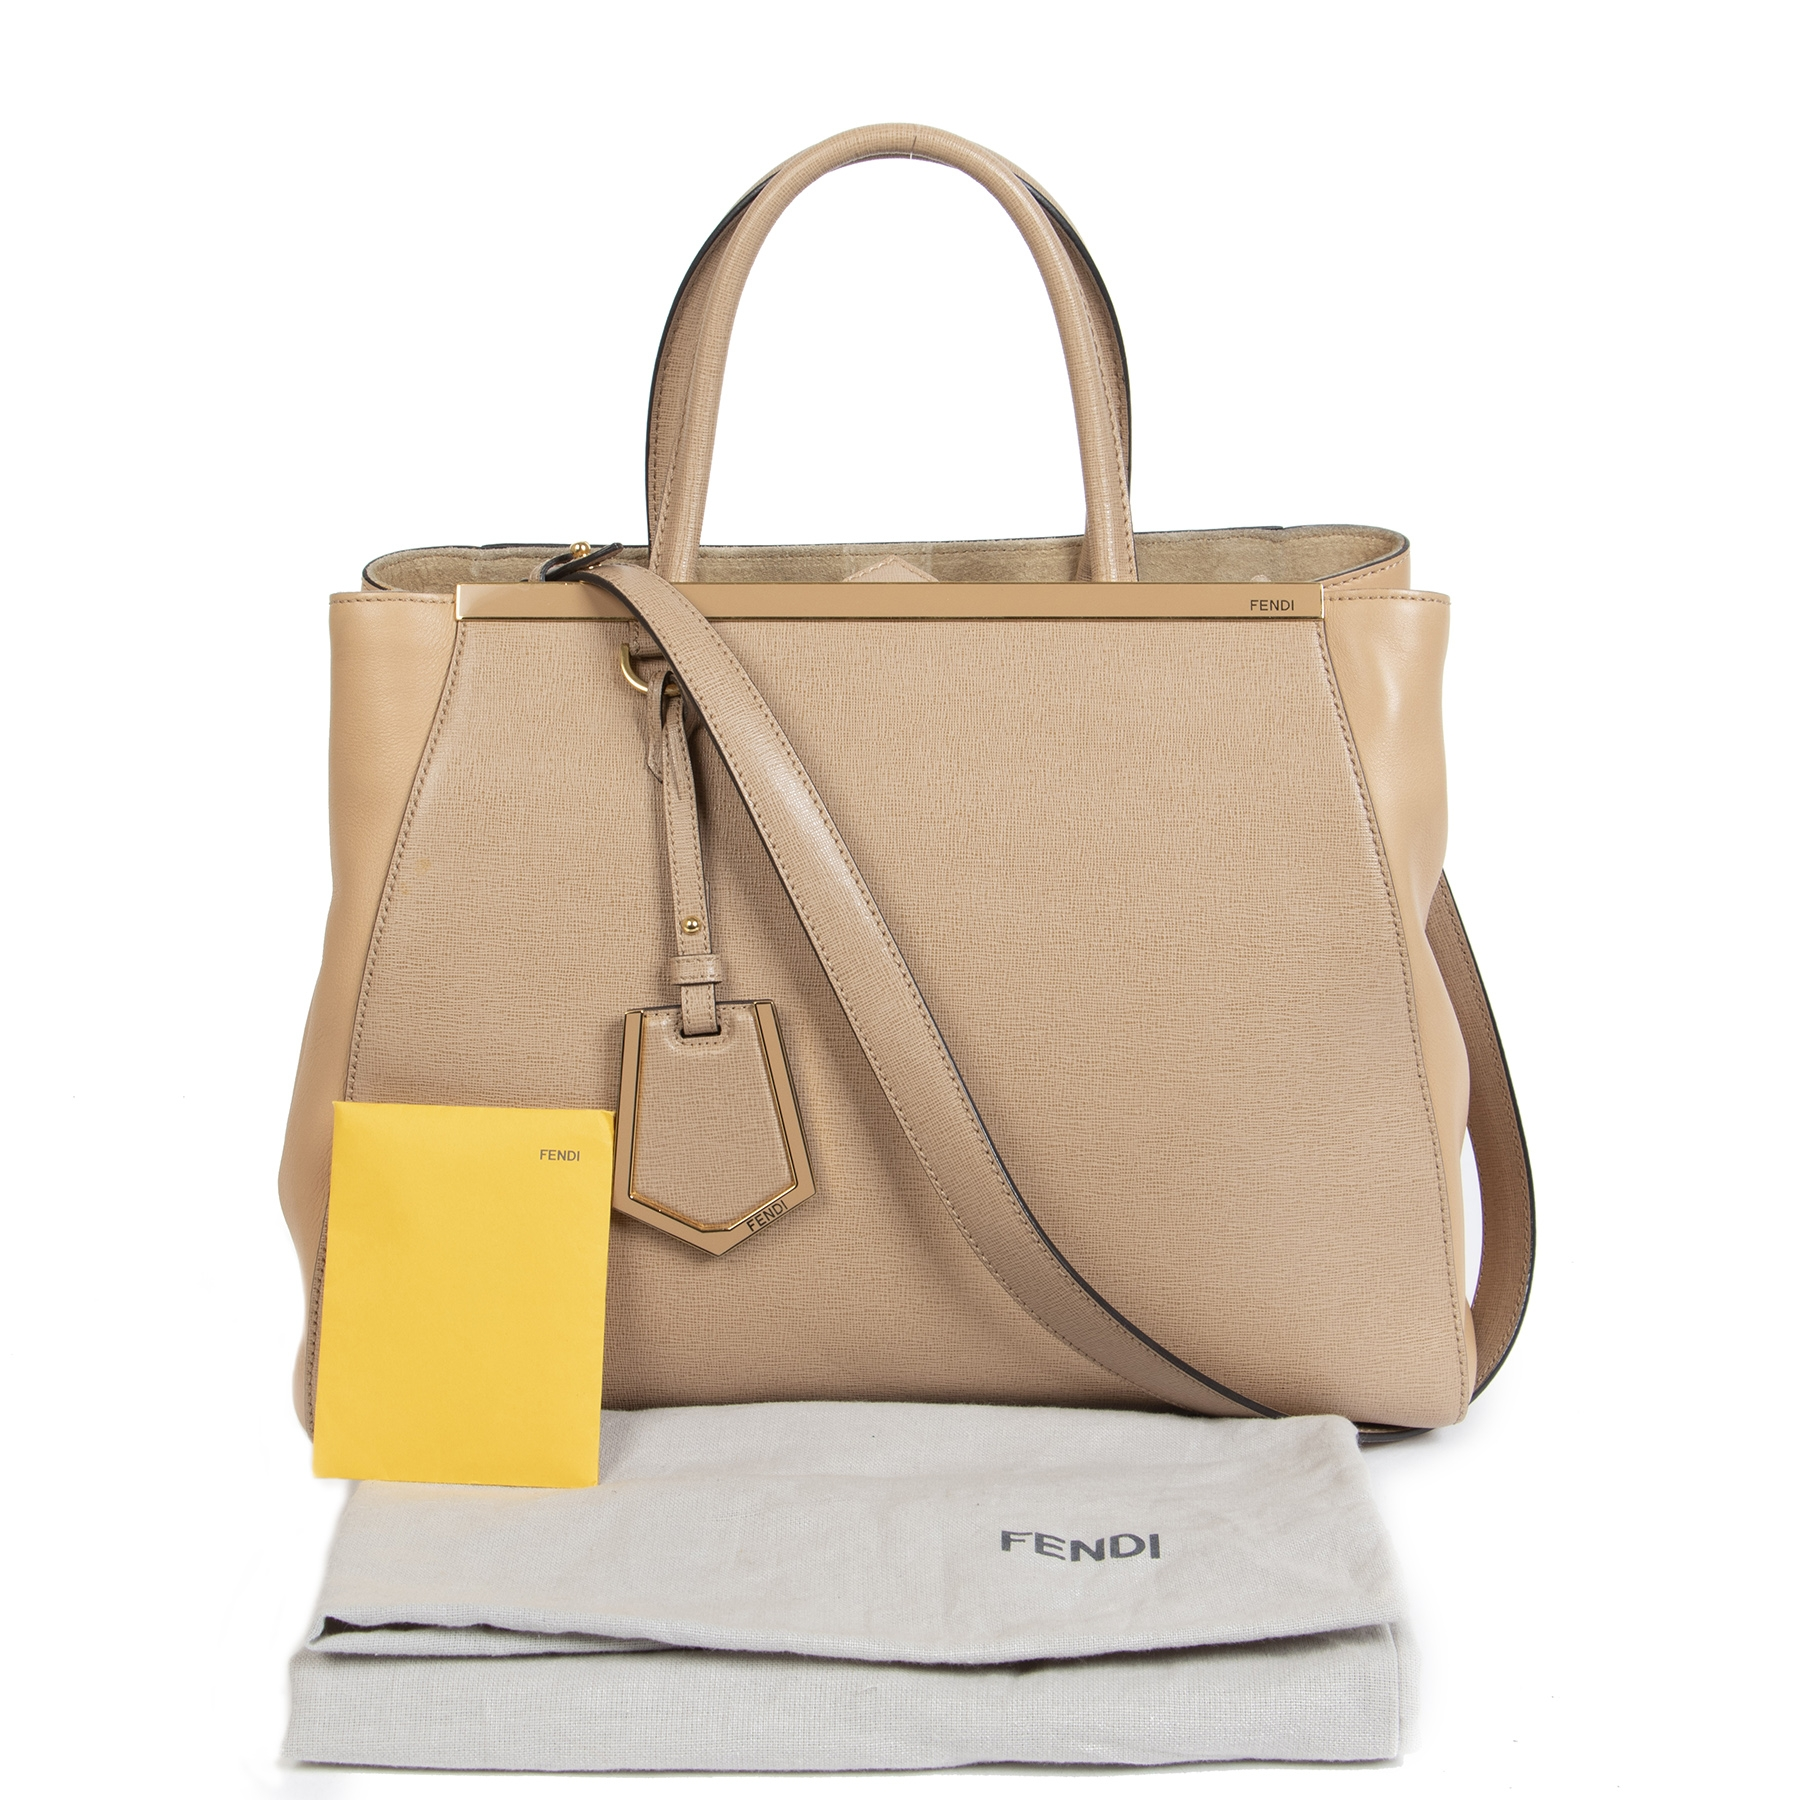 Fendi 2Jours Vitello Elite 'Make-Up' Beige Shoulder Bag